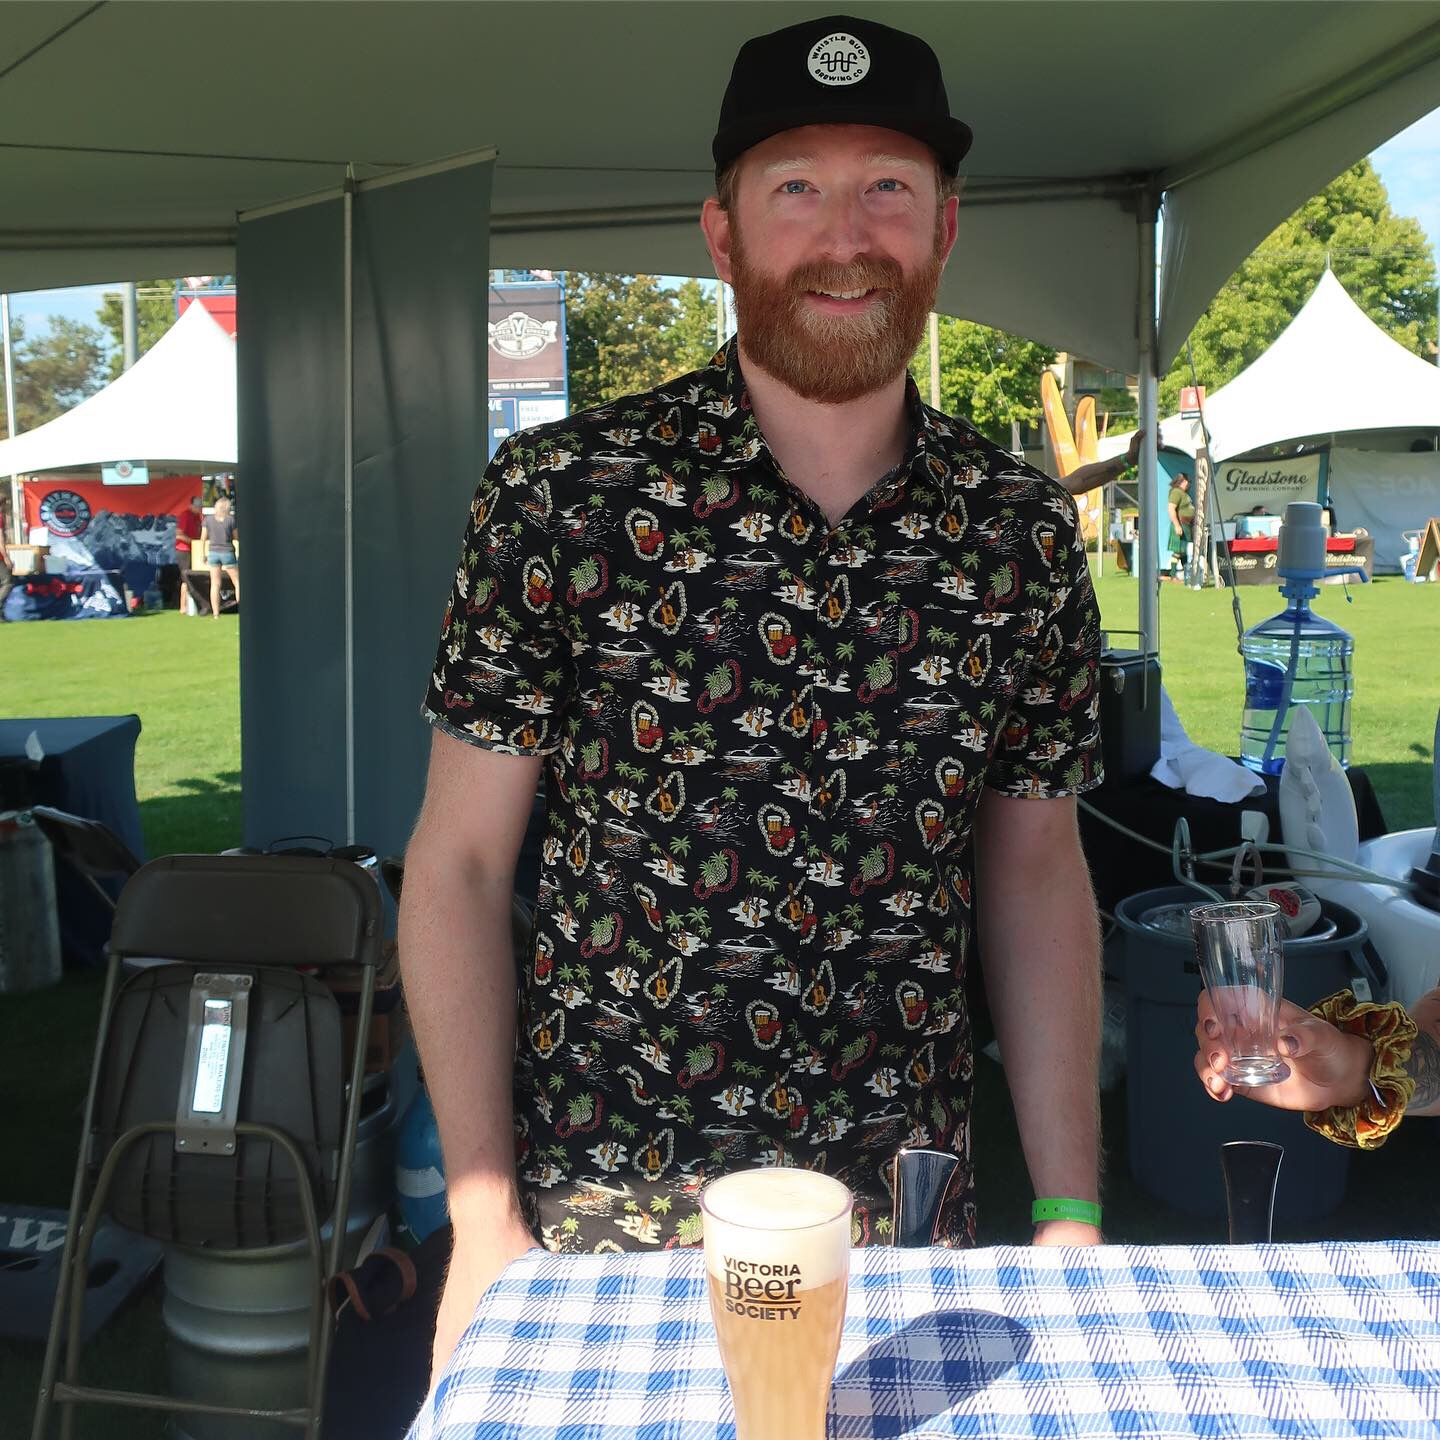 Matt West-Patrick, Brewmaster at Whistle Buoy Brewing during the 2019 Great Canadian Beer Festival.